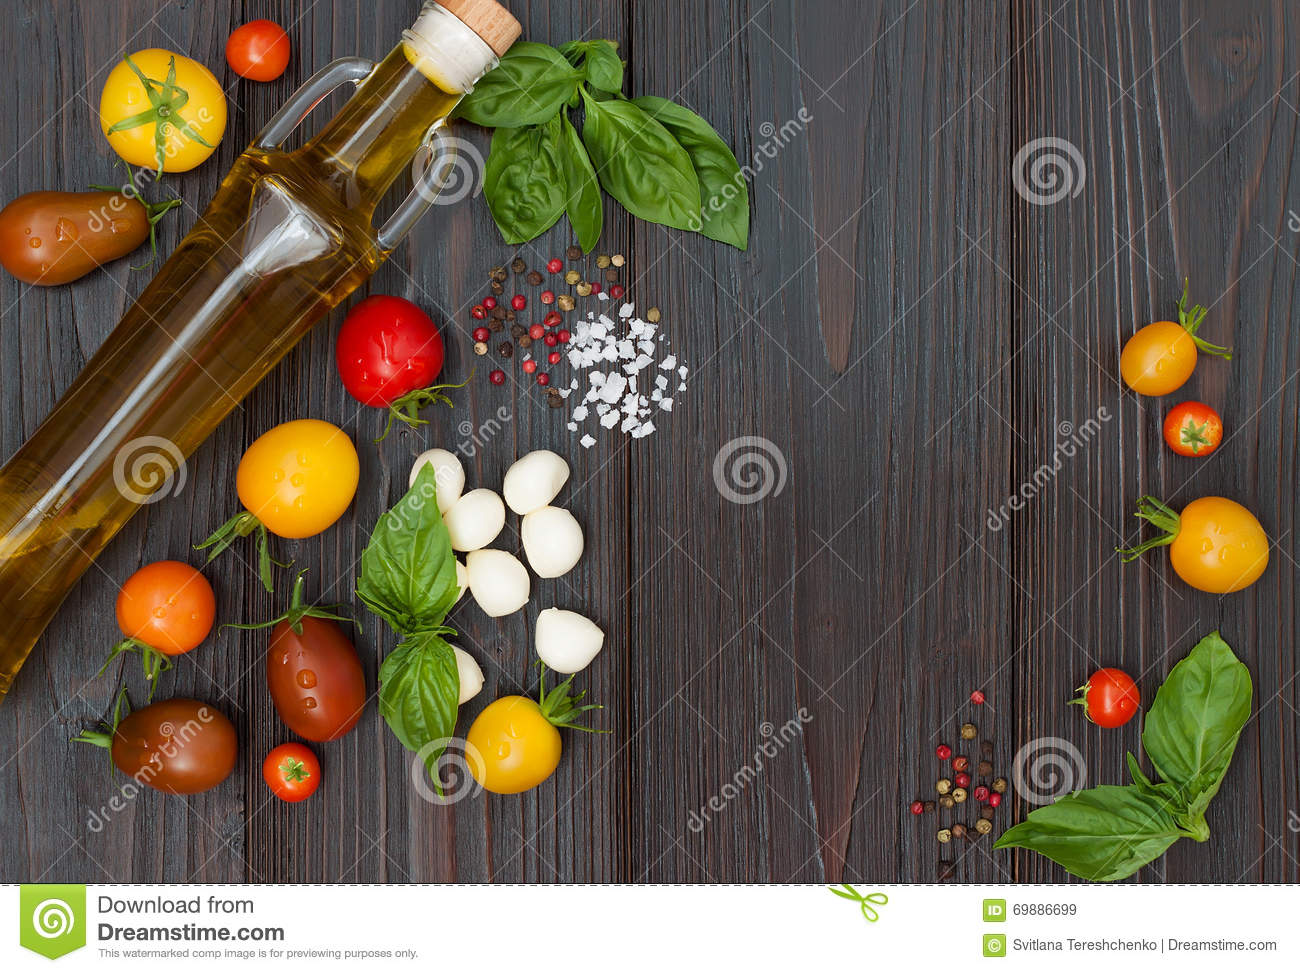 Cherry tomatoes, mozzarella, basil leaves, spices and olive oil from above. Italian caprese salad recipe ingredients